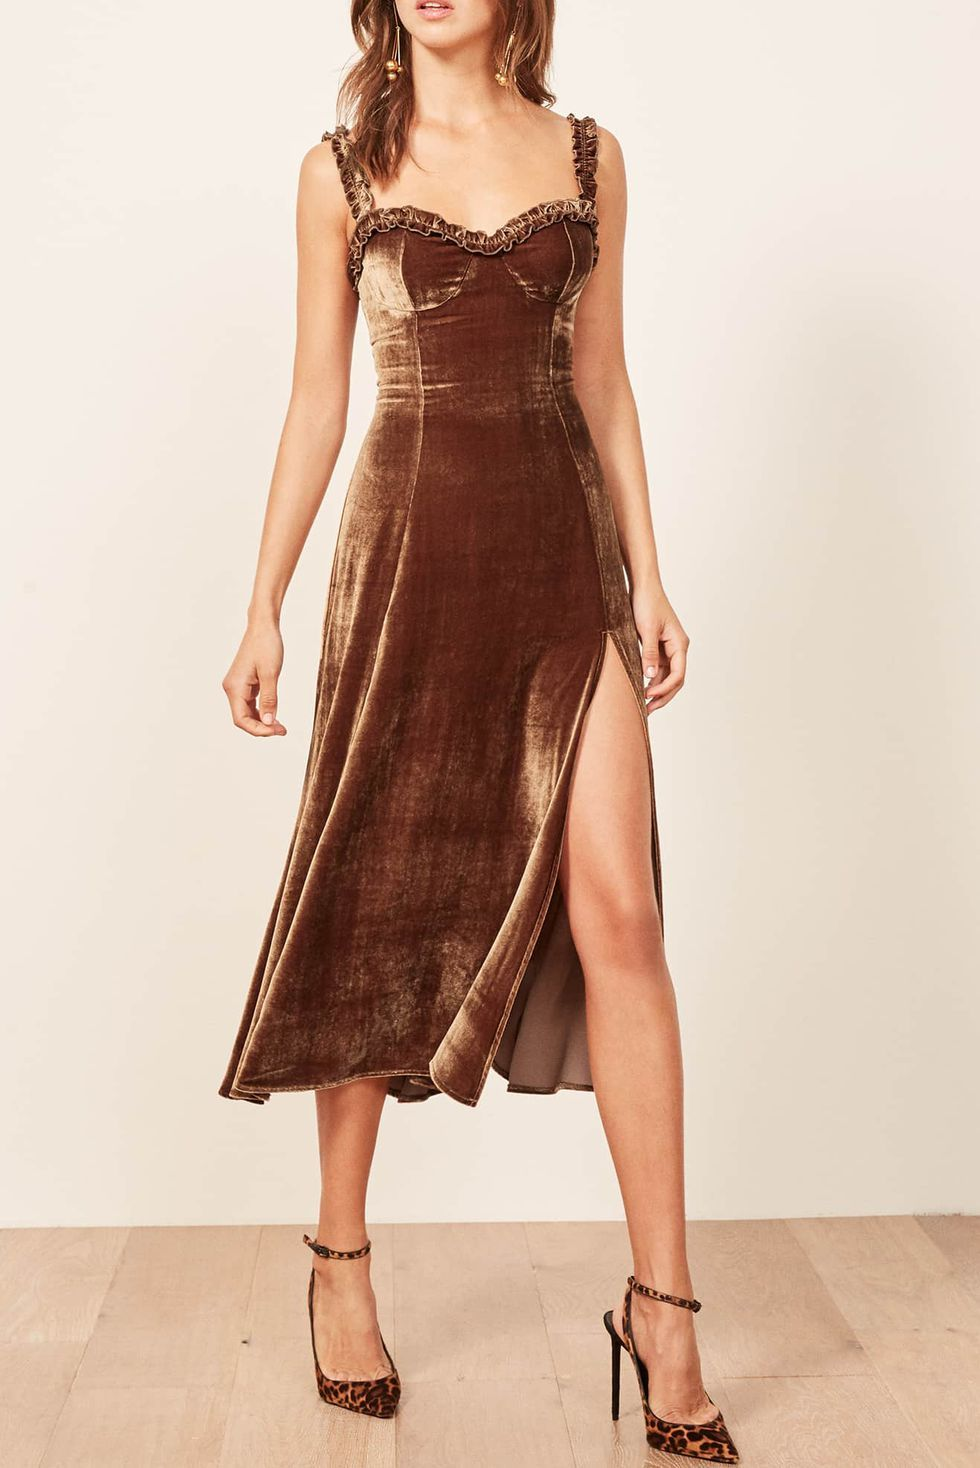 2c525f2bbec3 24 Amazing Winter Wedding Guest Dresses to Slay Your Next Event - What to  Wear to a Winter Wedding